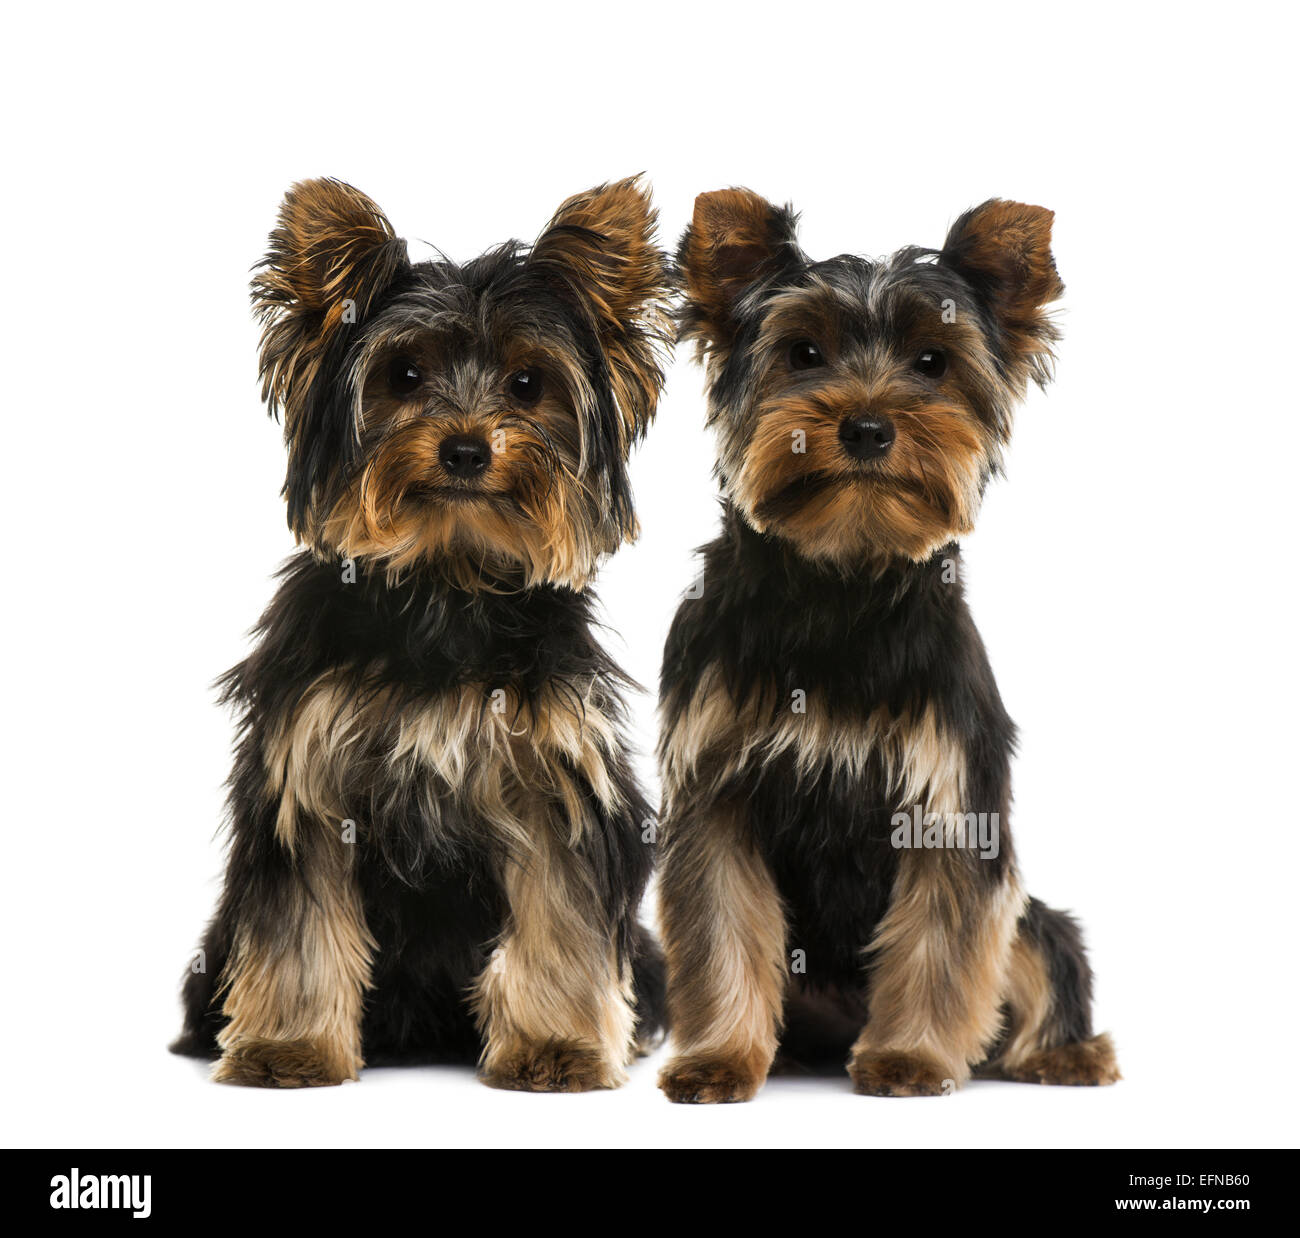 Two Yorkshire terriers next to each other against white background - Stock Image